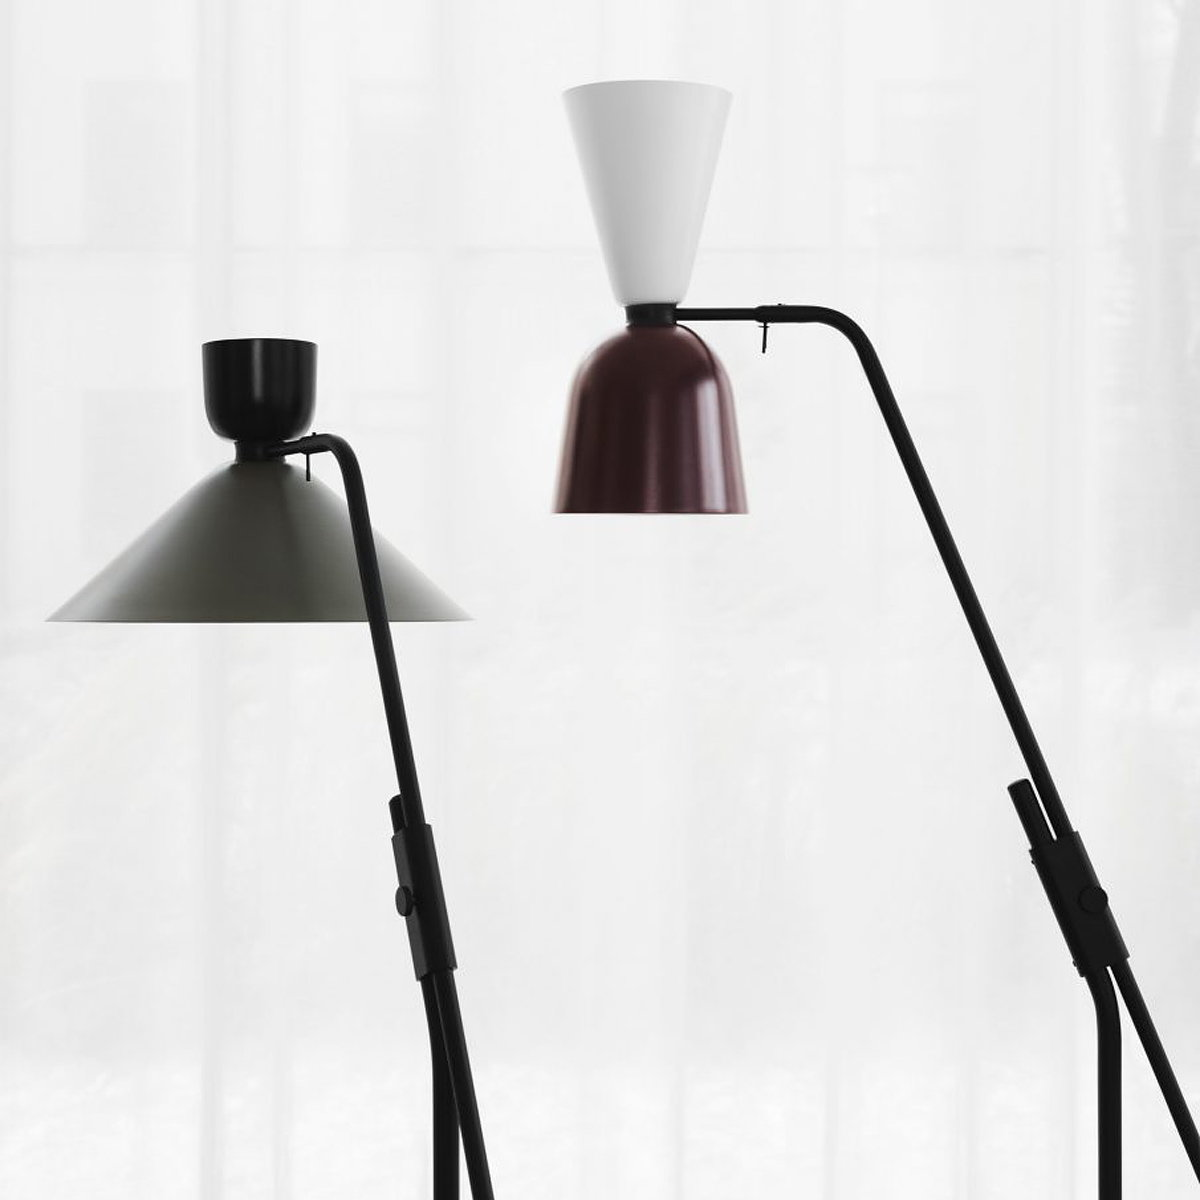 Hem Unveils Alphabeta Floor Lamp by Luca Nichetto